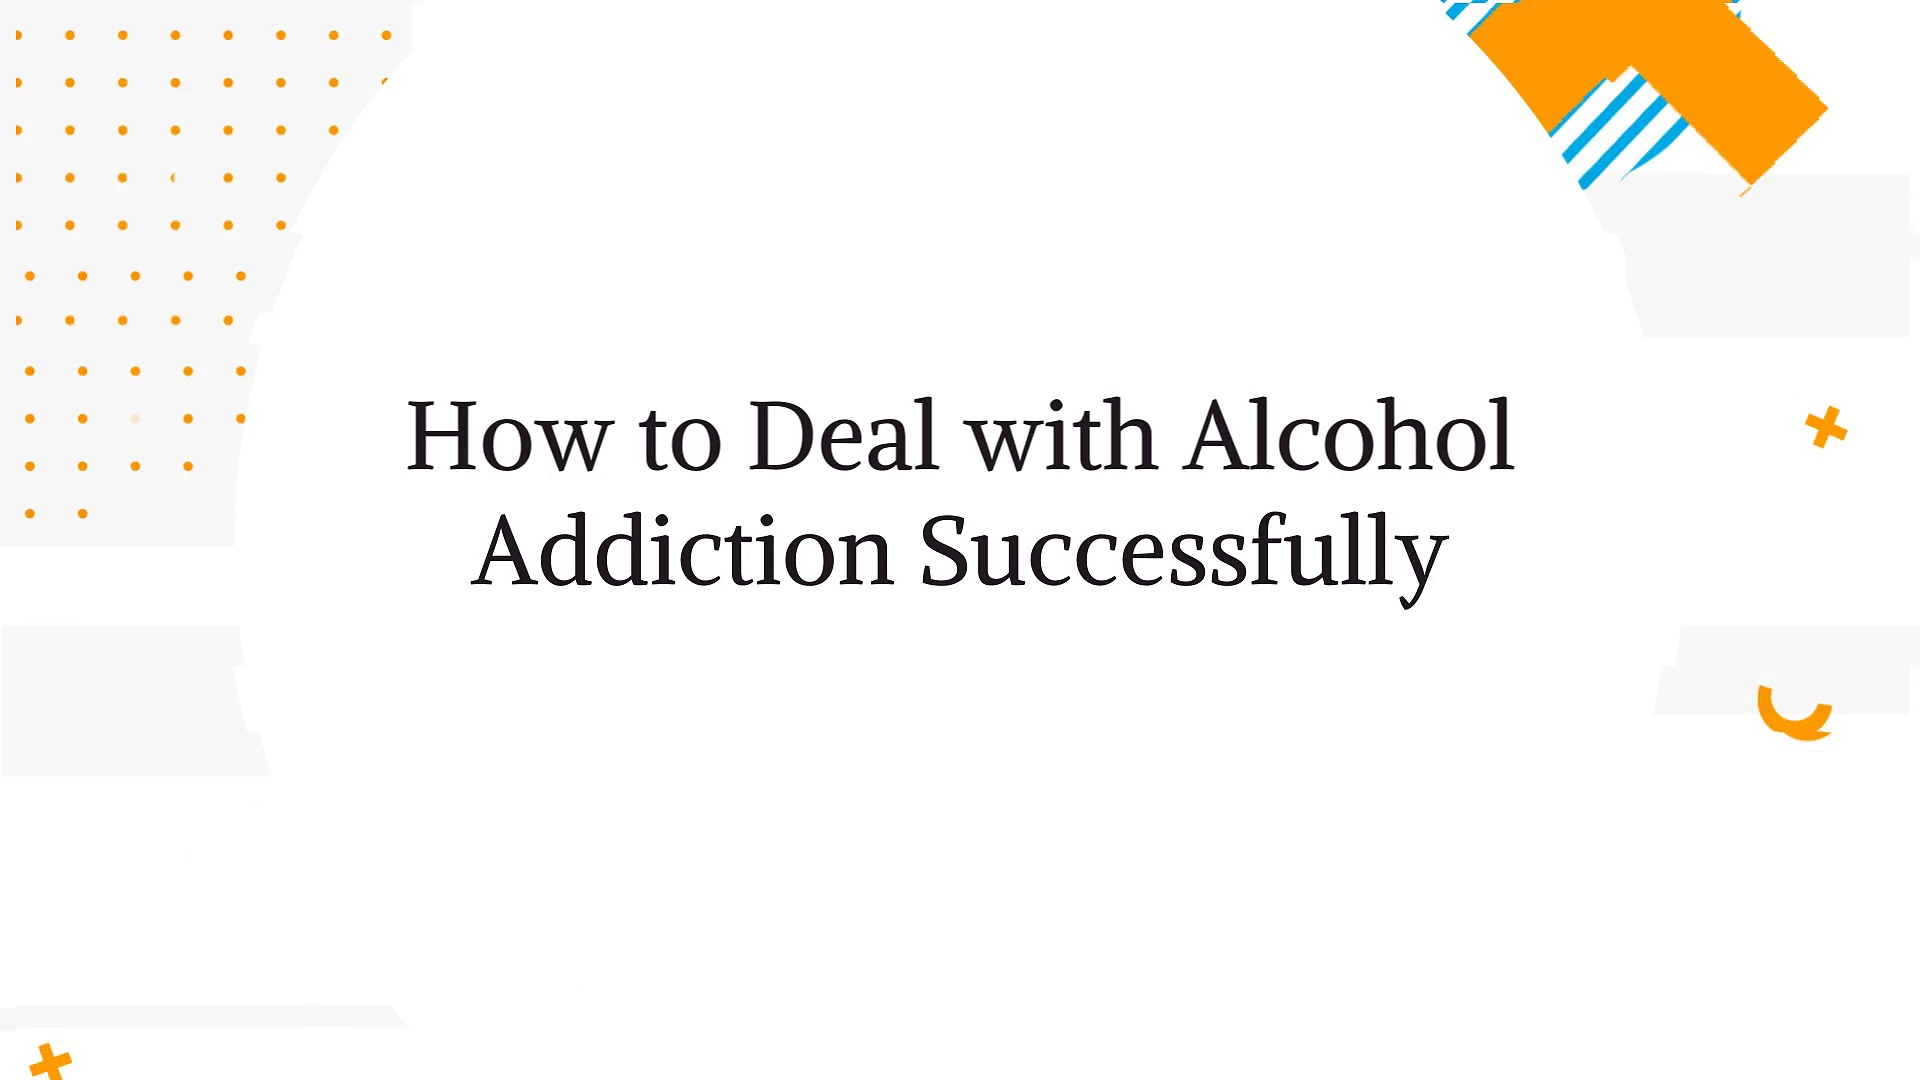 How to Deal with Alcohol Addiction Successfully | Addiction Rehab Centres